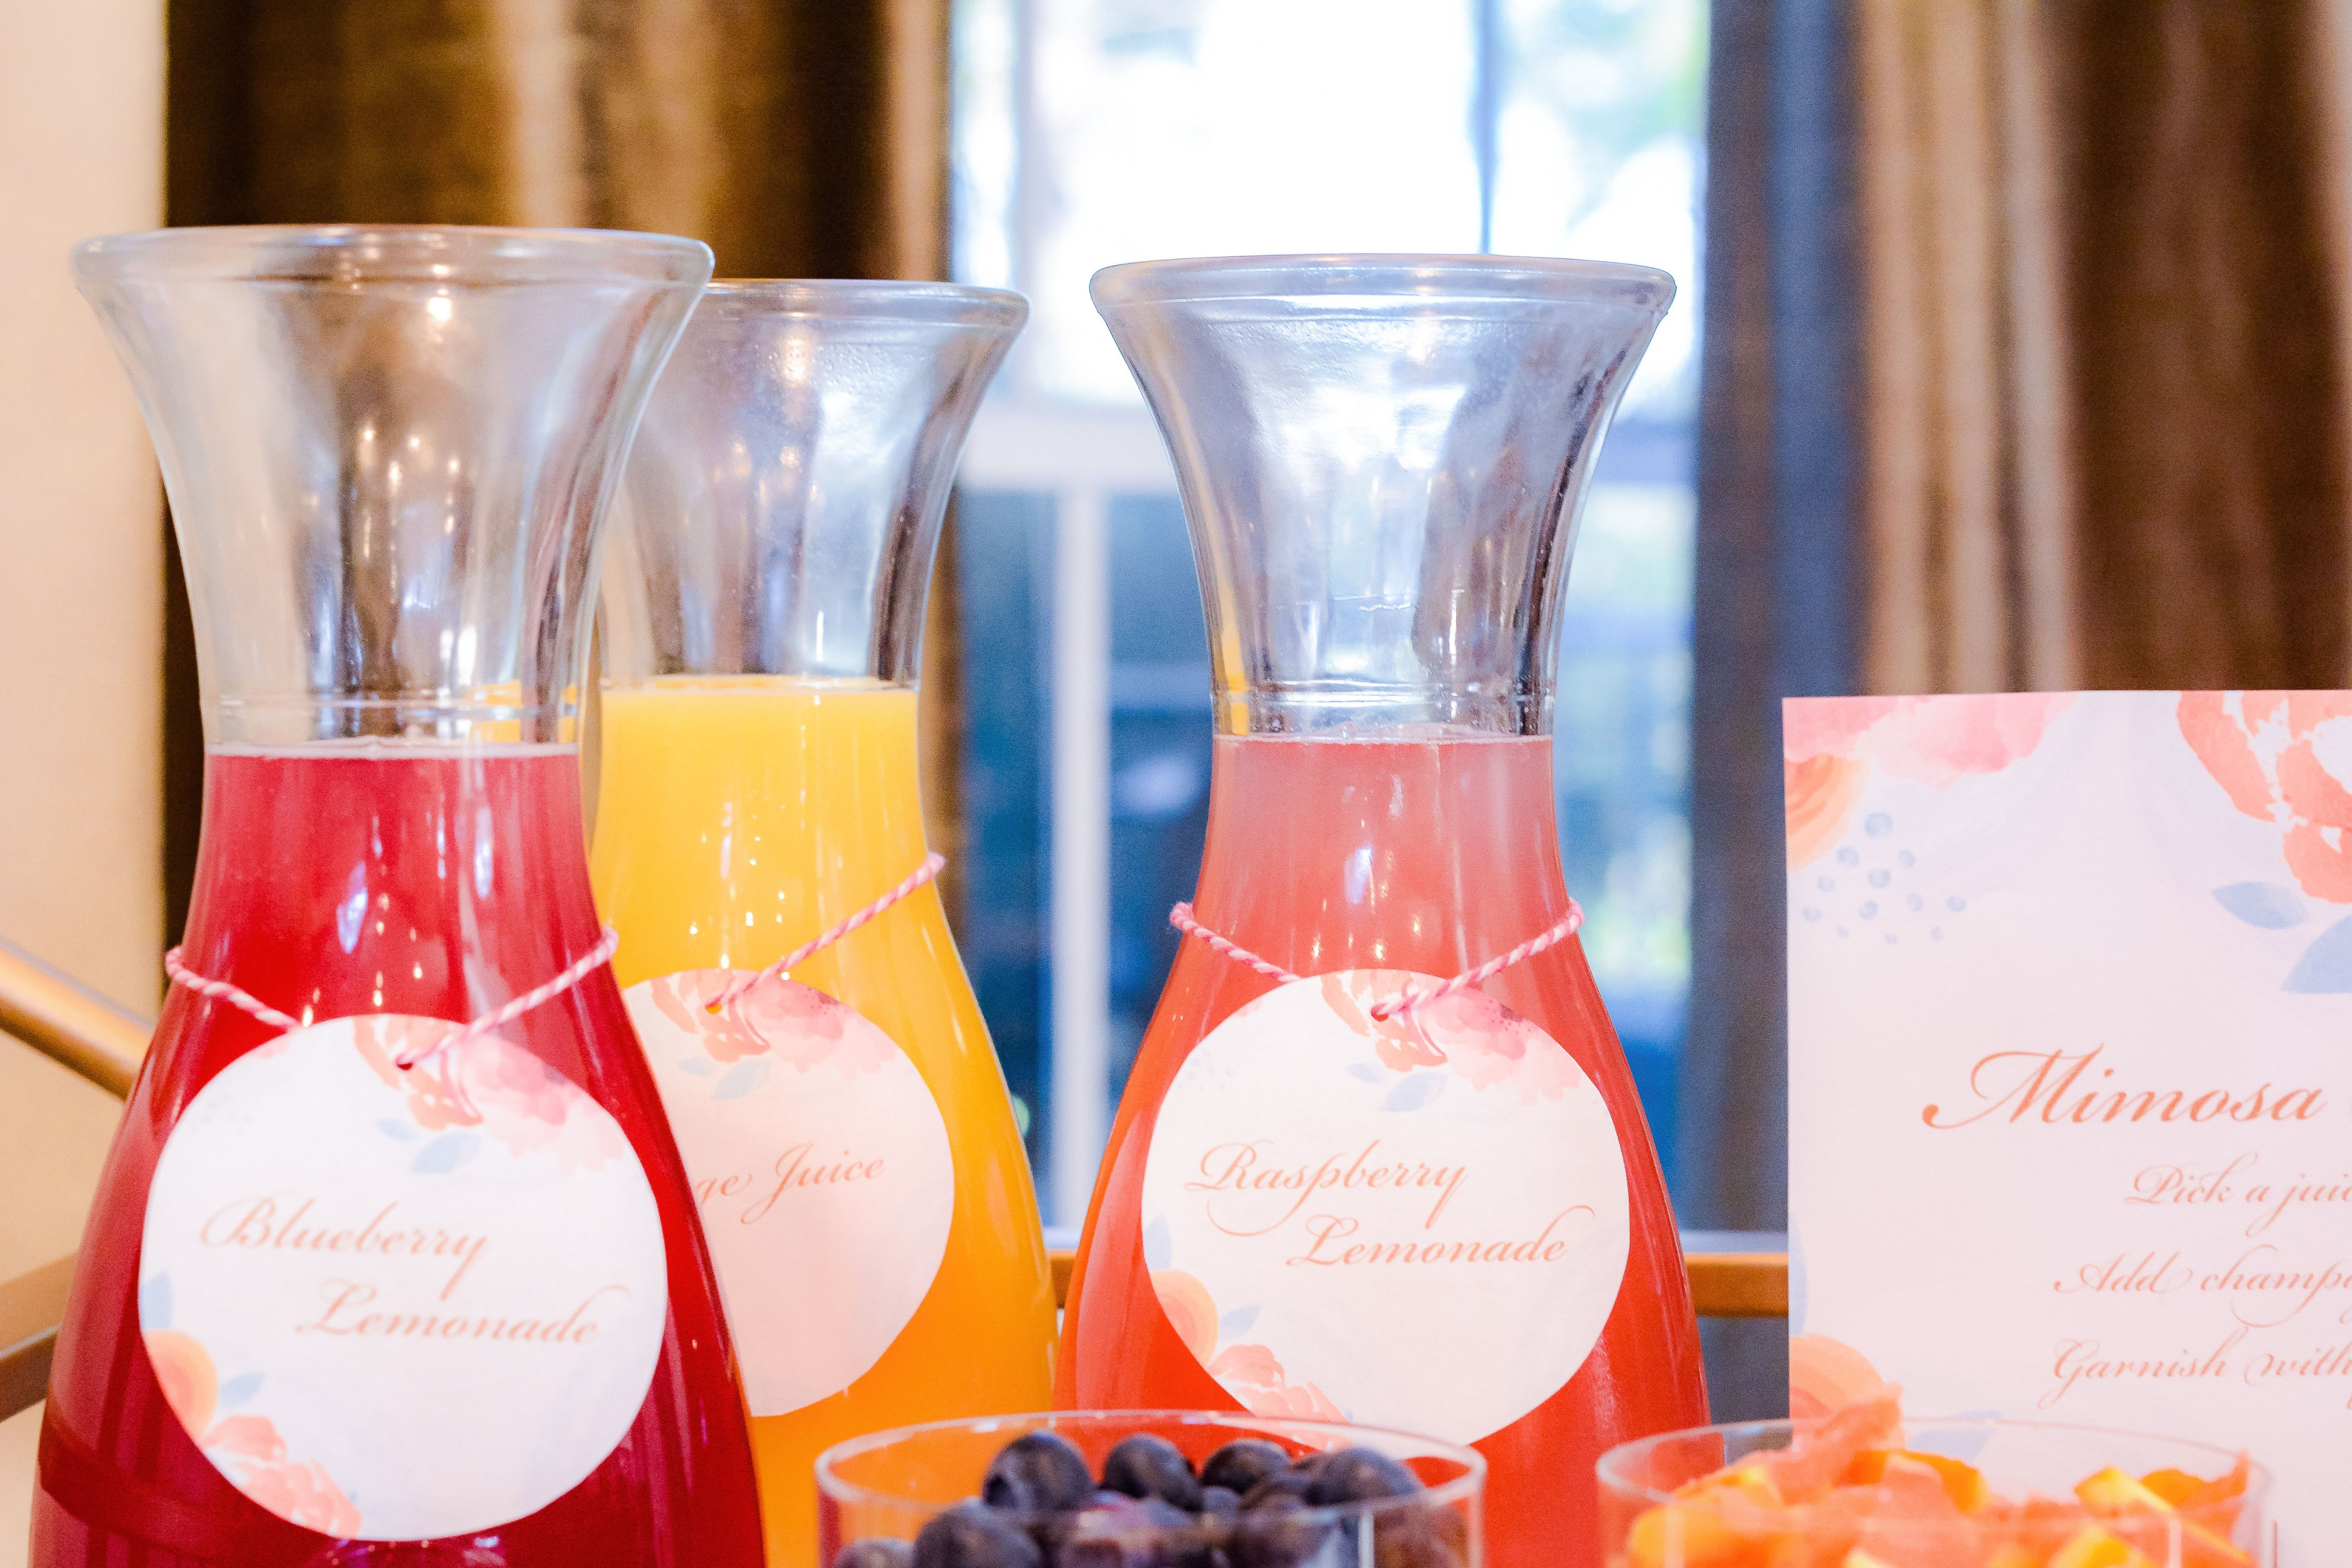 Hosting a brunch? Looking for mimosa bar ideas? We have all the tips and ideas you'll need for a beautiful, fun and yummy brunch!